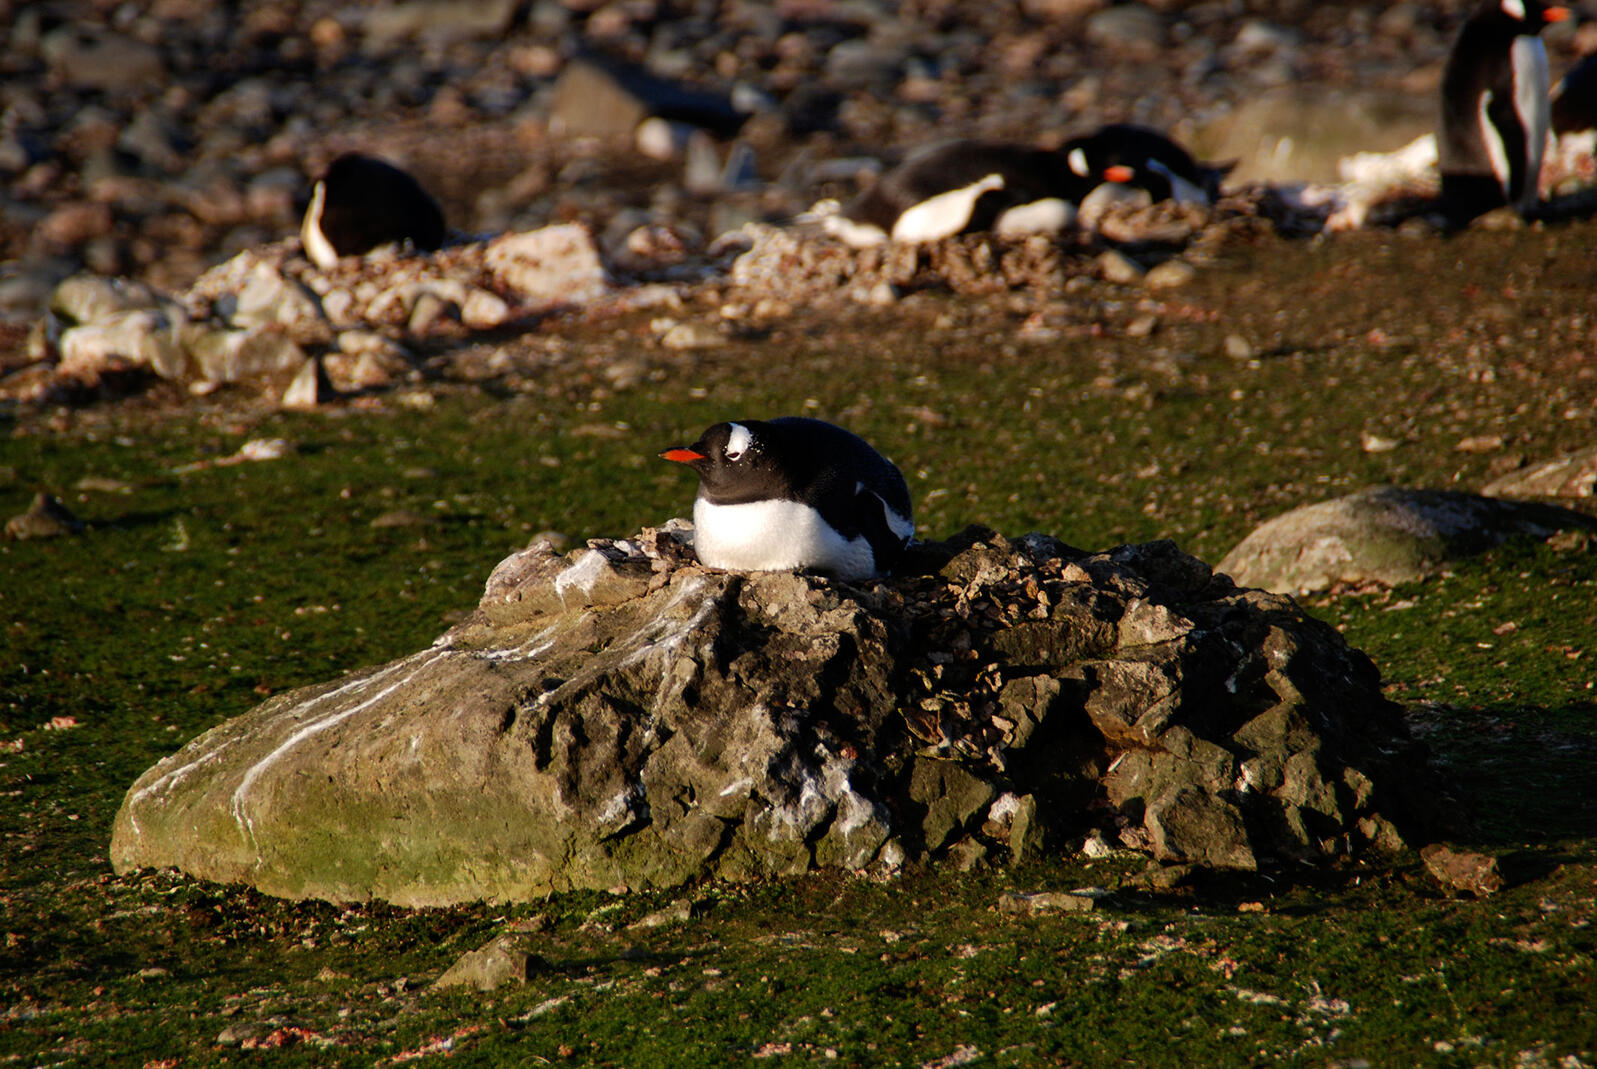 Gentoo Penguins nesting on the rocky outcrops of Ardley Island. Stephen Roberts